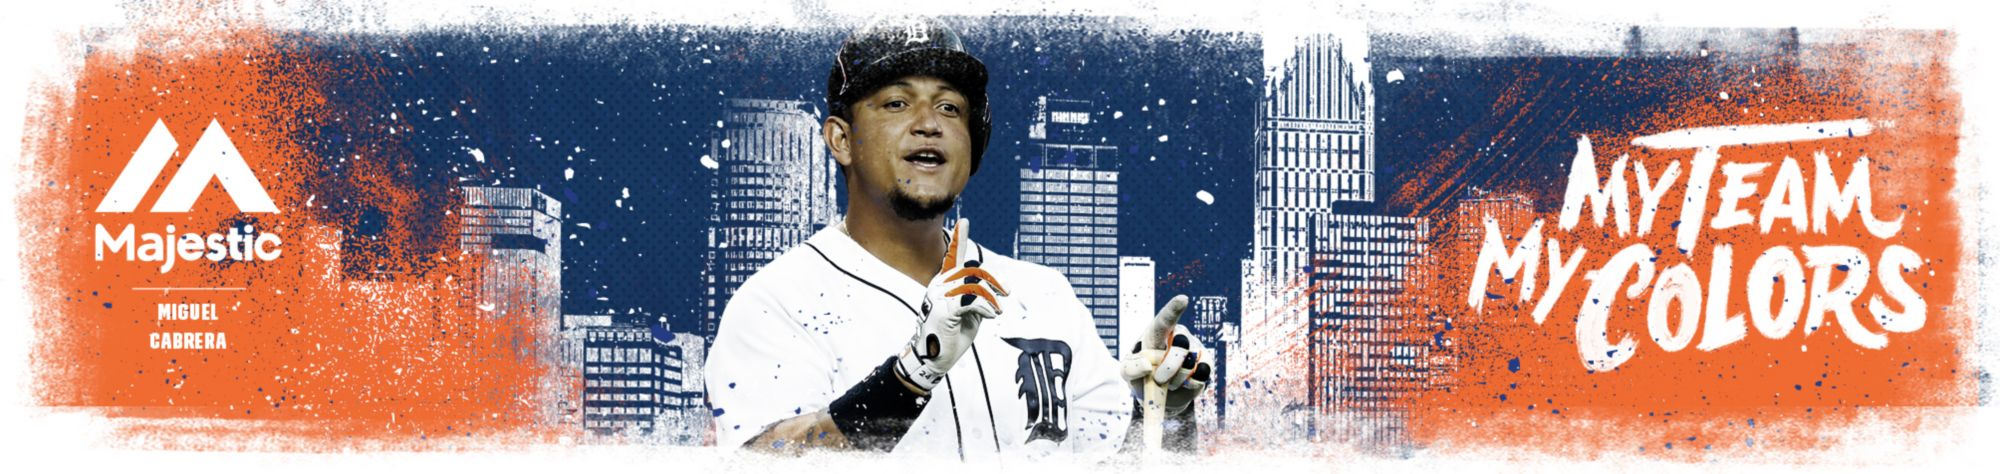 Detroit Tigers Apparel & Gear